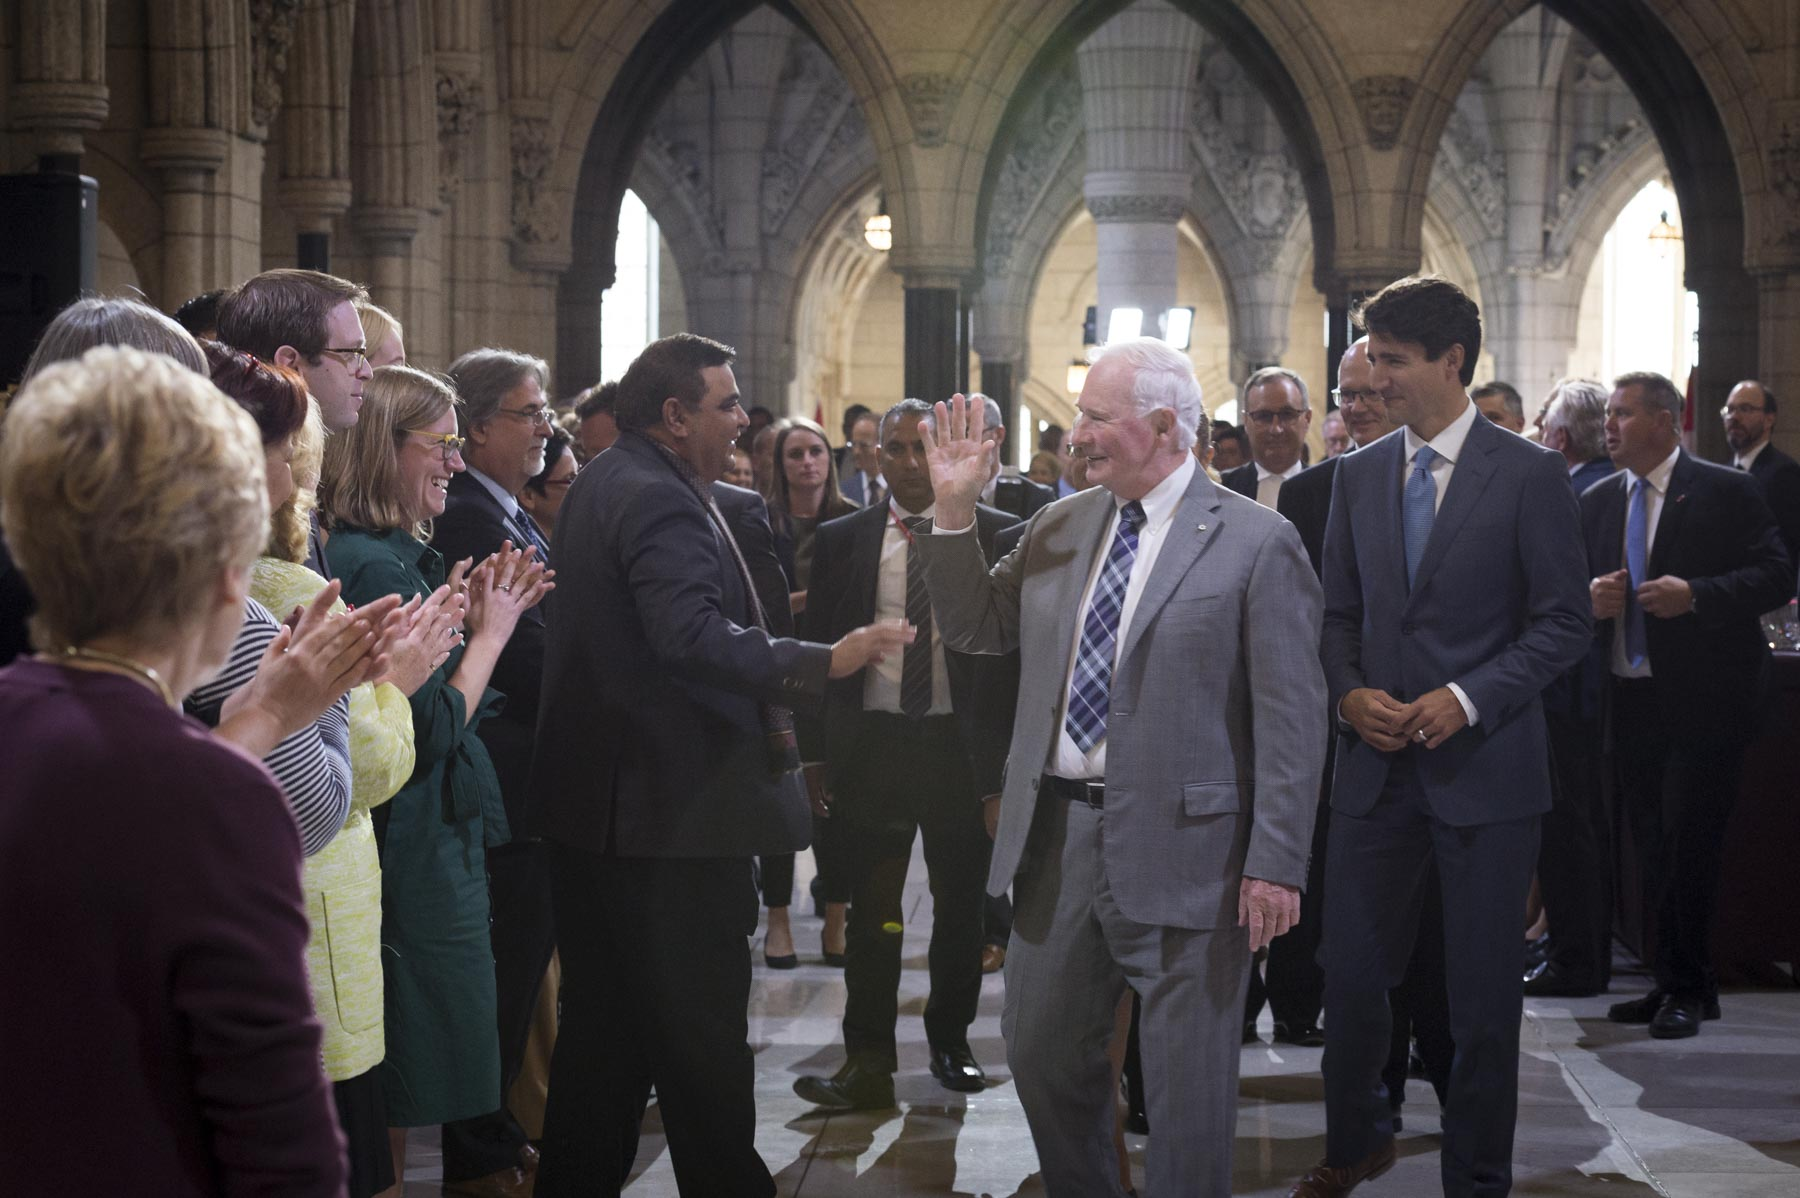 Shortly after, Their Excellencies attended a farewell reception hosted by the Honourable George J. Furey, Speaker of the Senate, and the Honourable Geoff Regan, Speaker of the House of Commons.